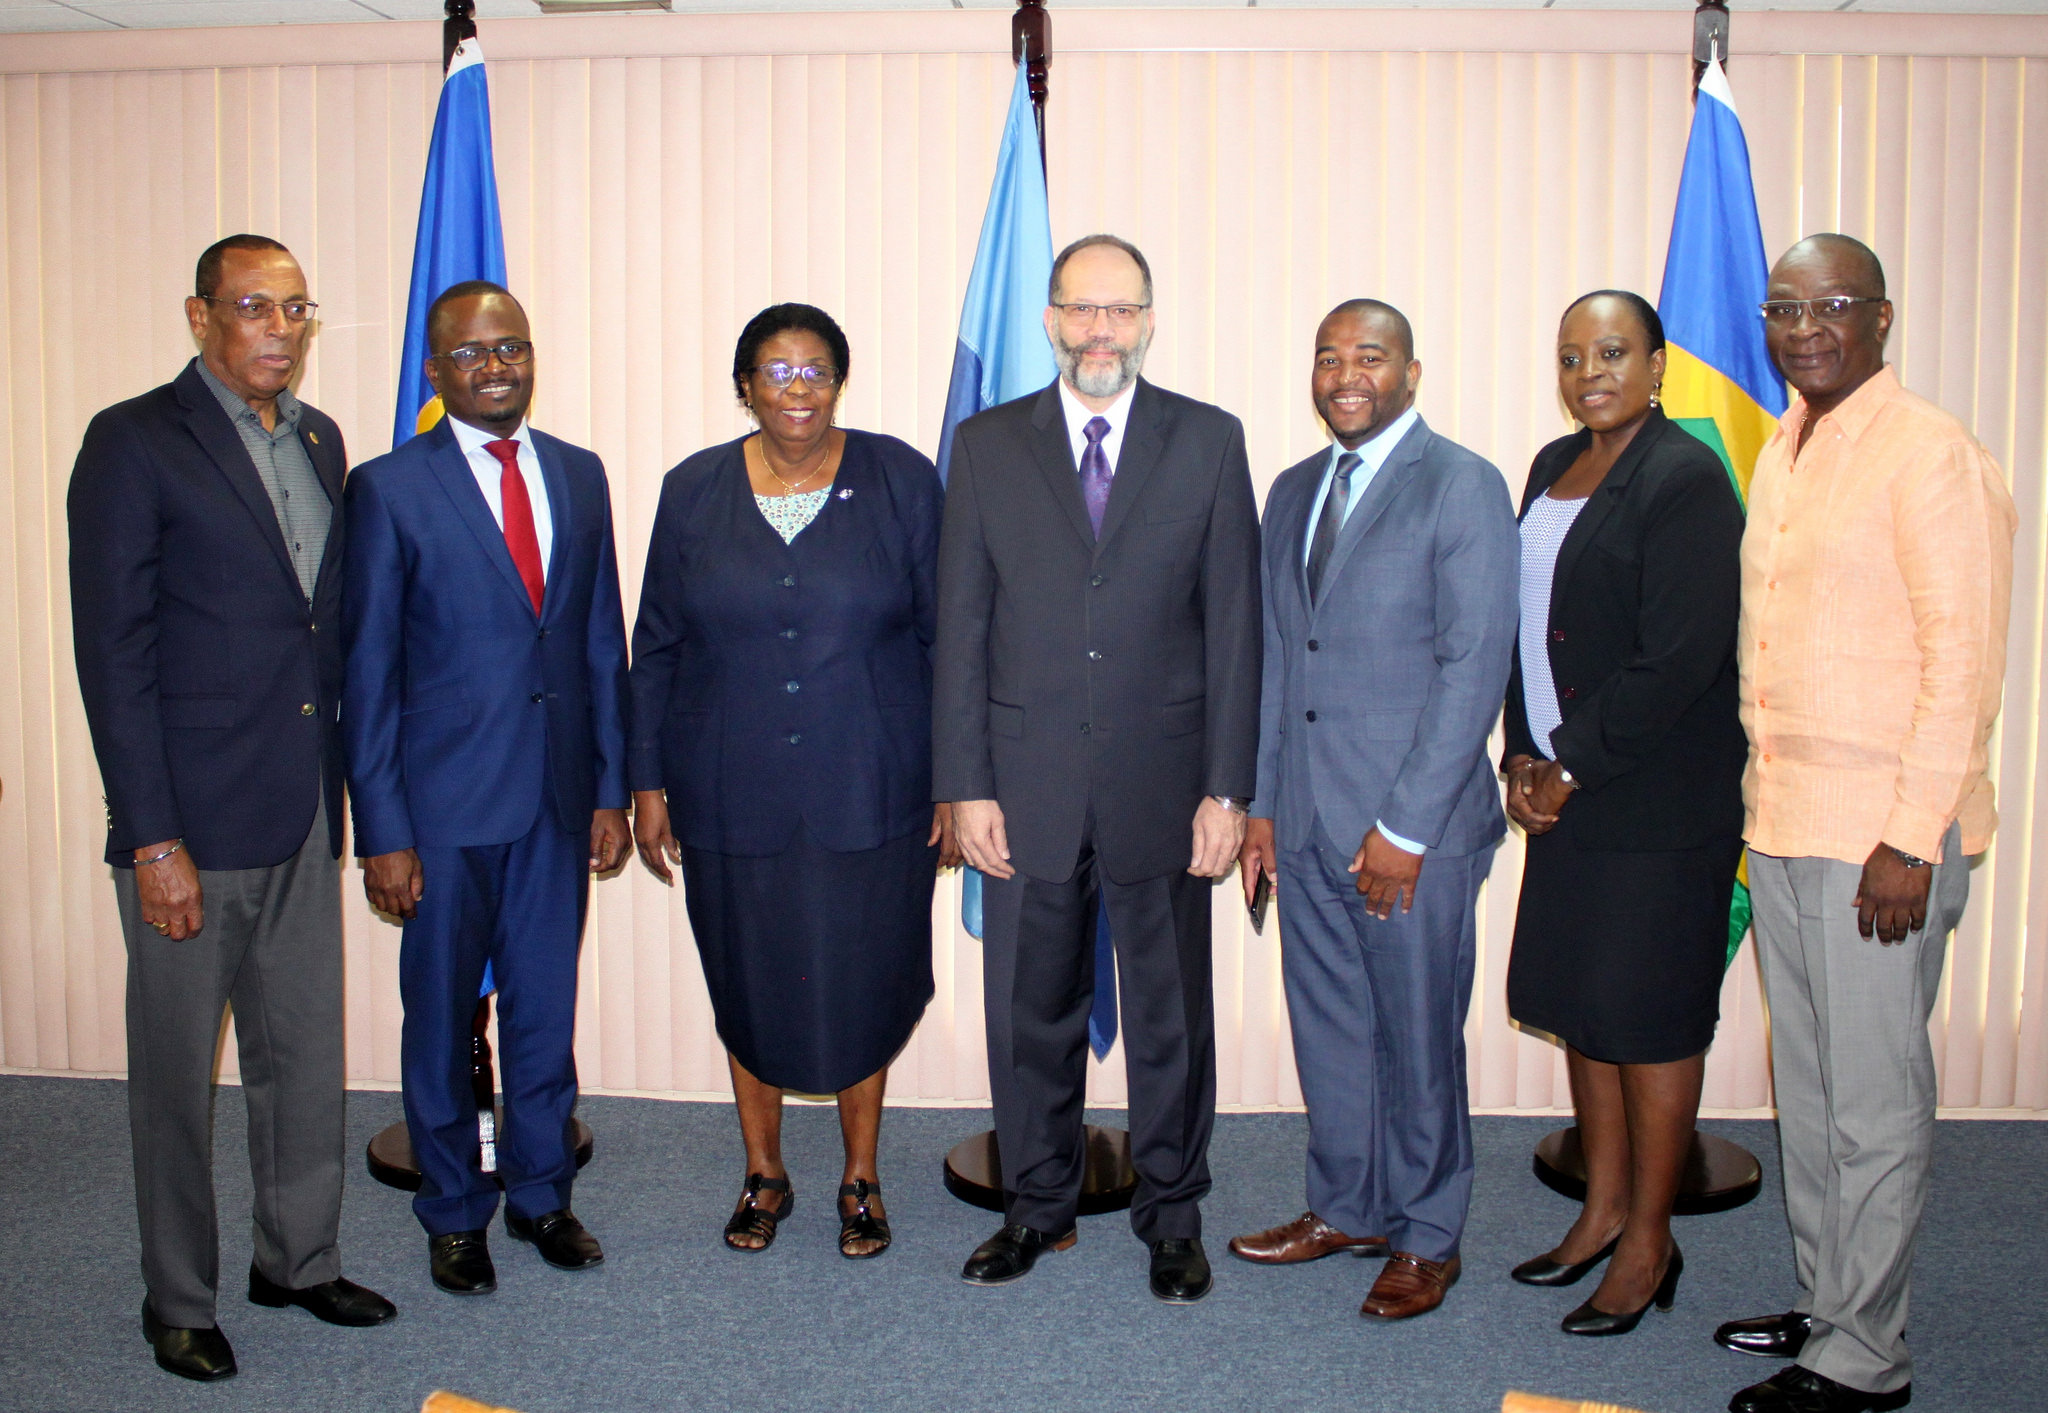 Fellow Ambassadors and the Secretary-General pose with the Ambassadors of Barbados  (3rd left) and SVG (3rd right)